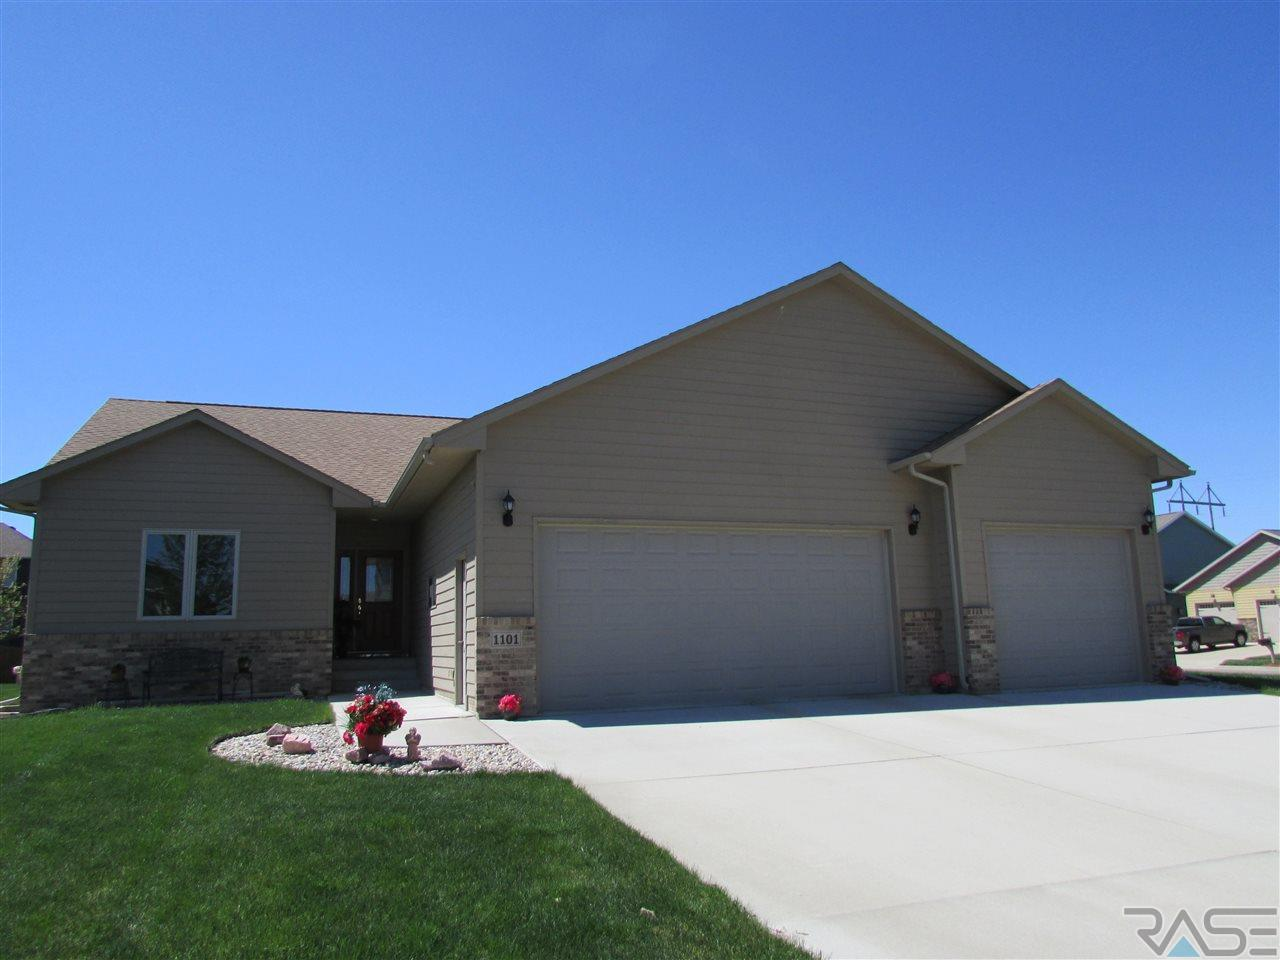 1101 S Tayberry Ave, Sioux Falls, SD 57106